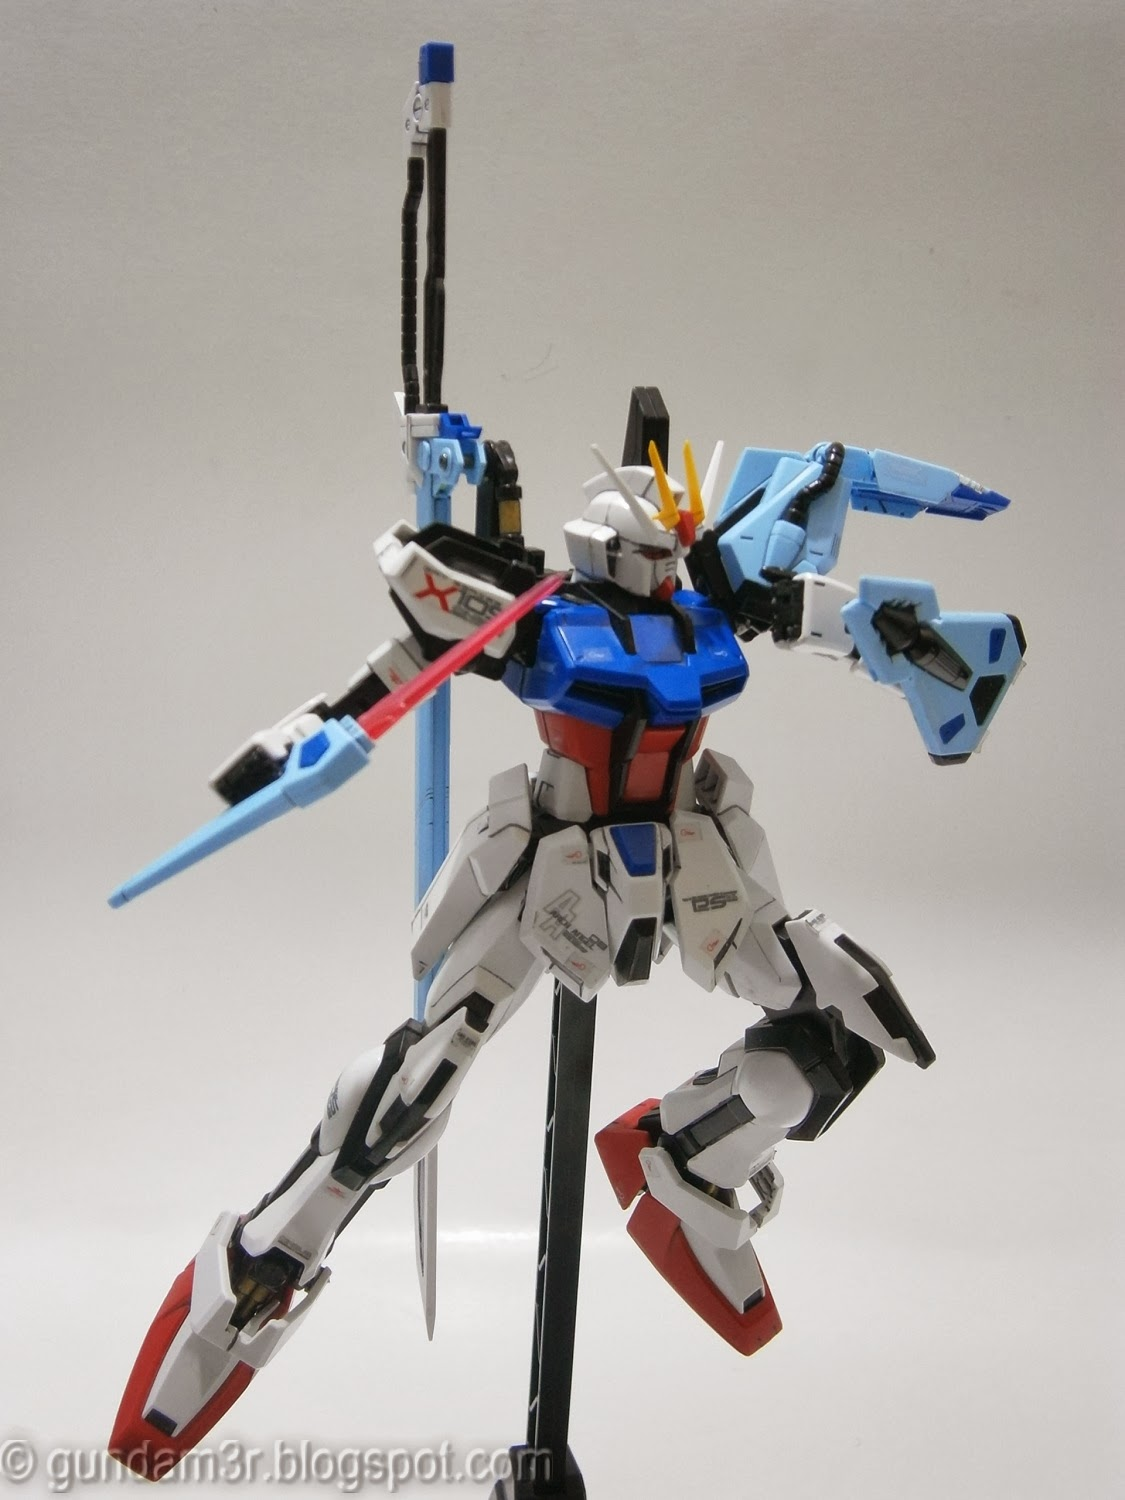 Launcher Sword Strike Gundam Mg Review Part 3 Gundam3r